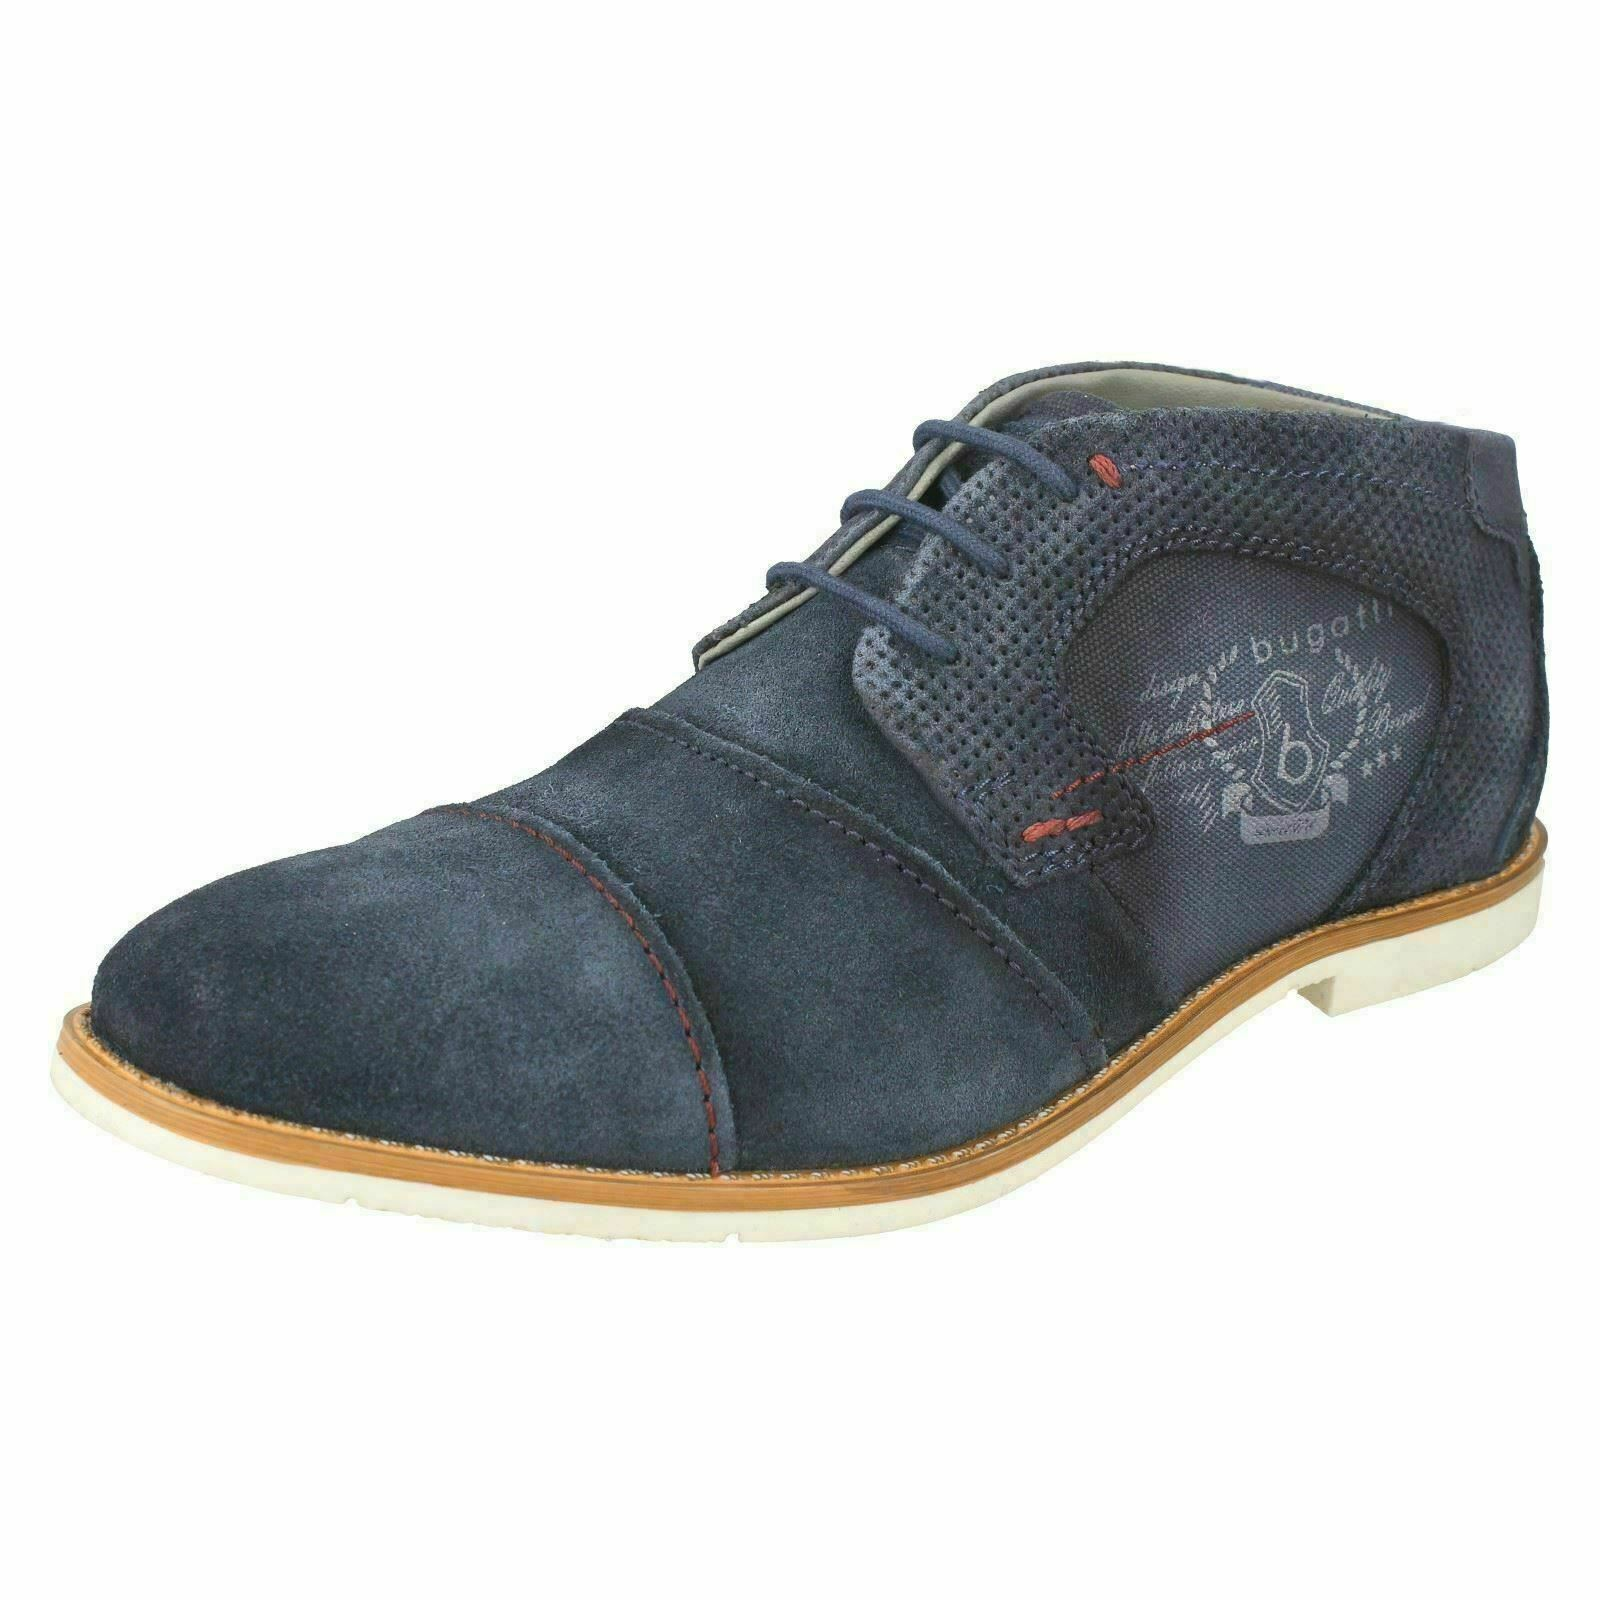 Bugatti Men with Leather shoeslaces, Casual Navy Flats Boots 313 11115